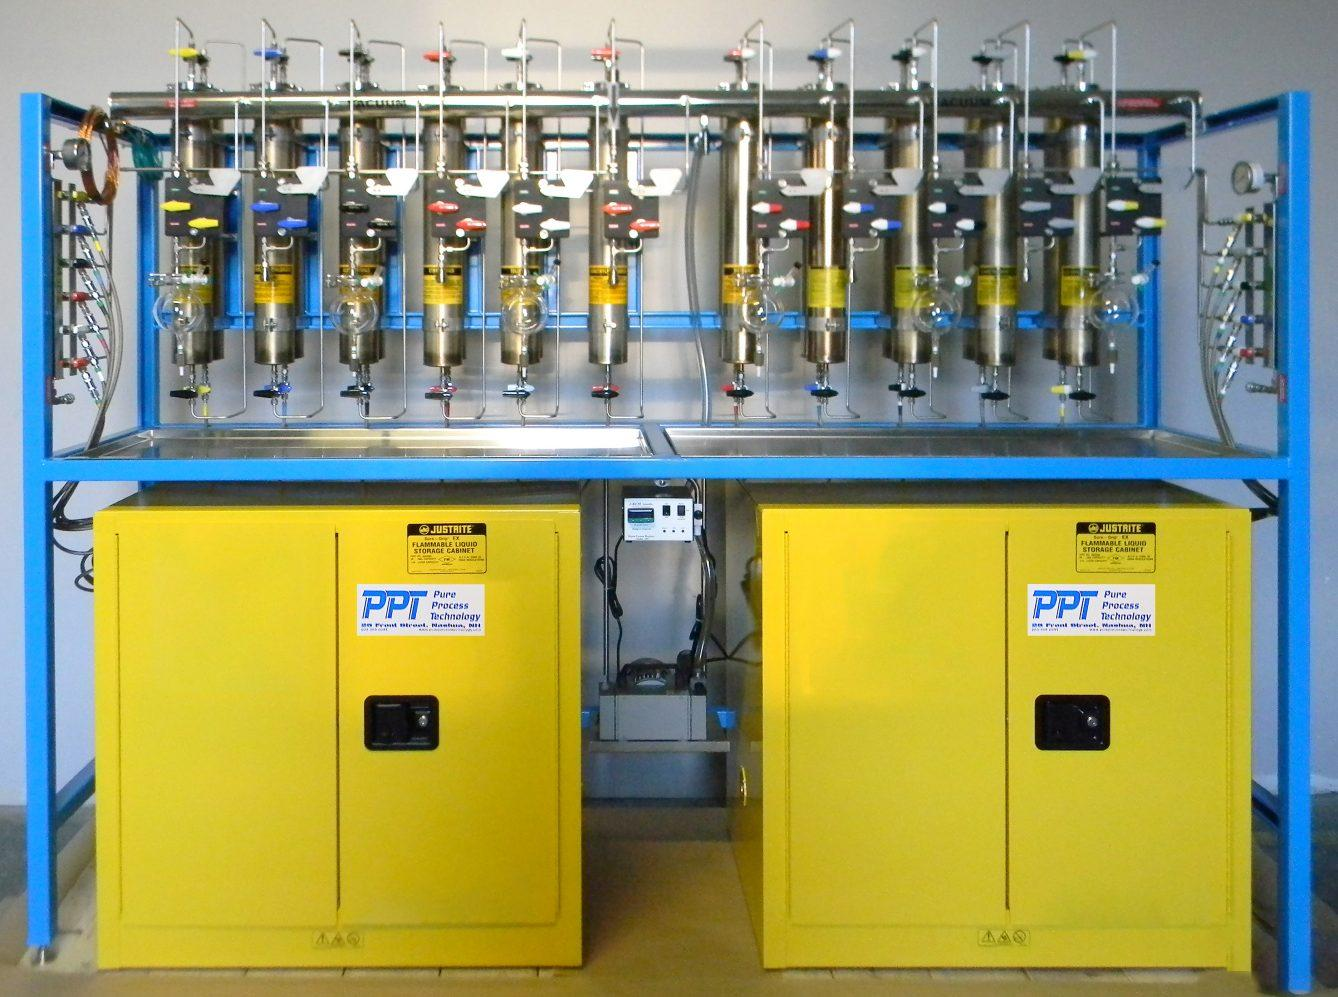 Top of the line Solvent Purification Systems